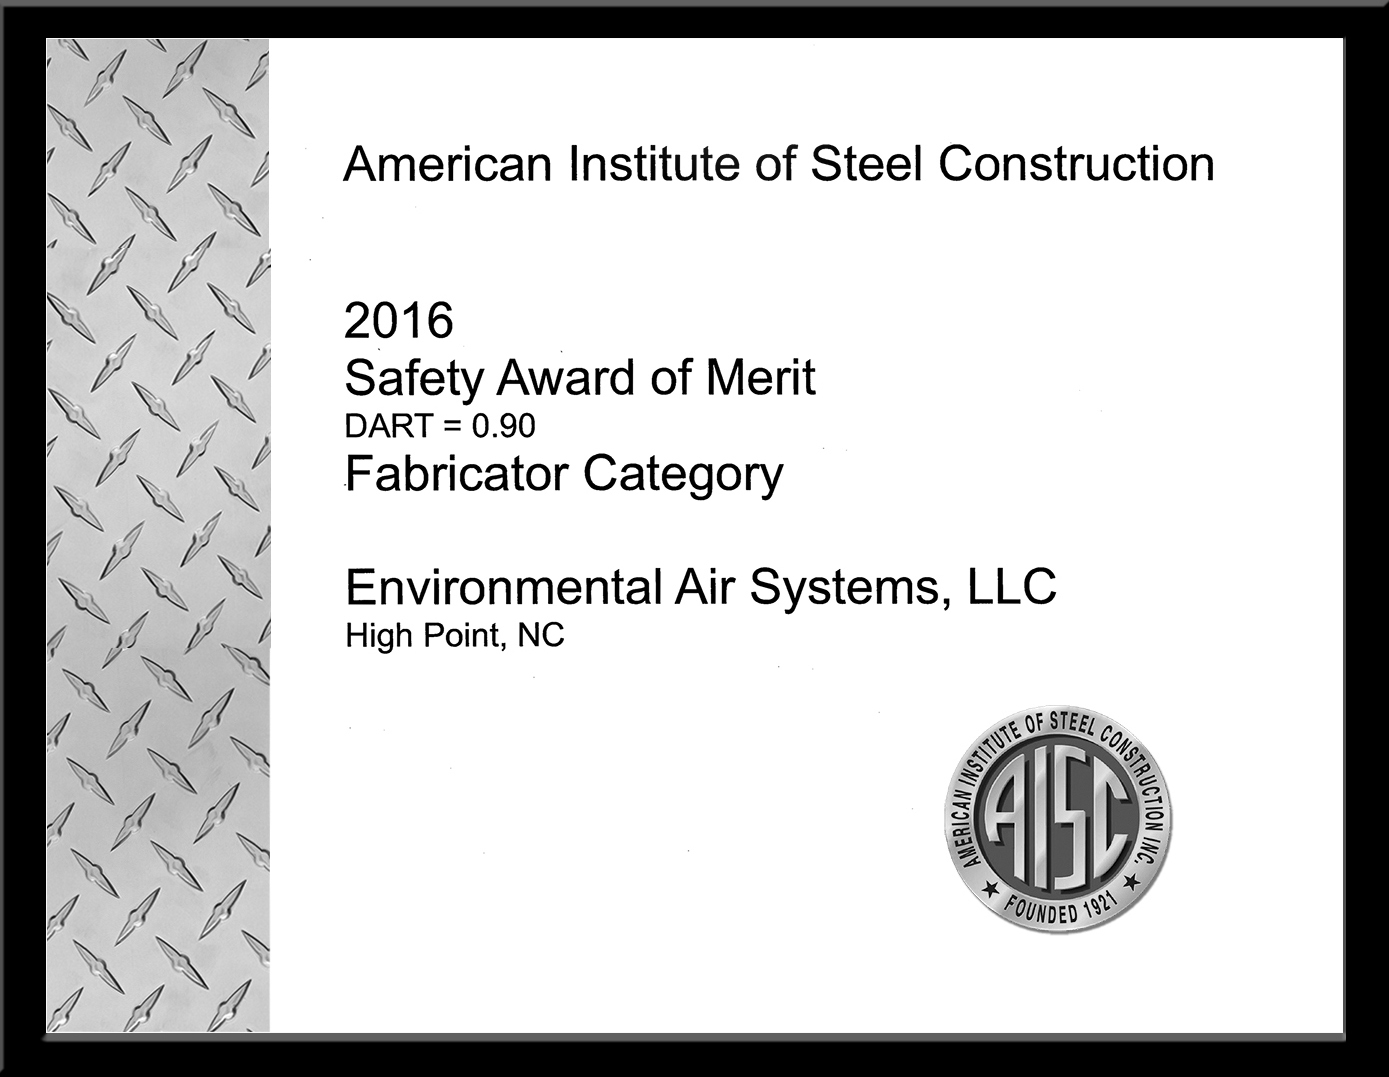 AISC Safety Award